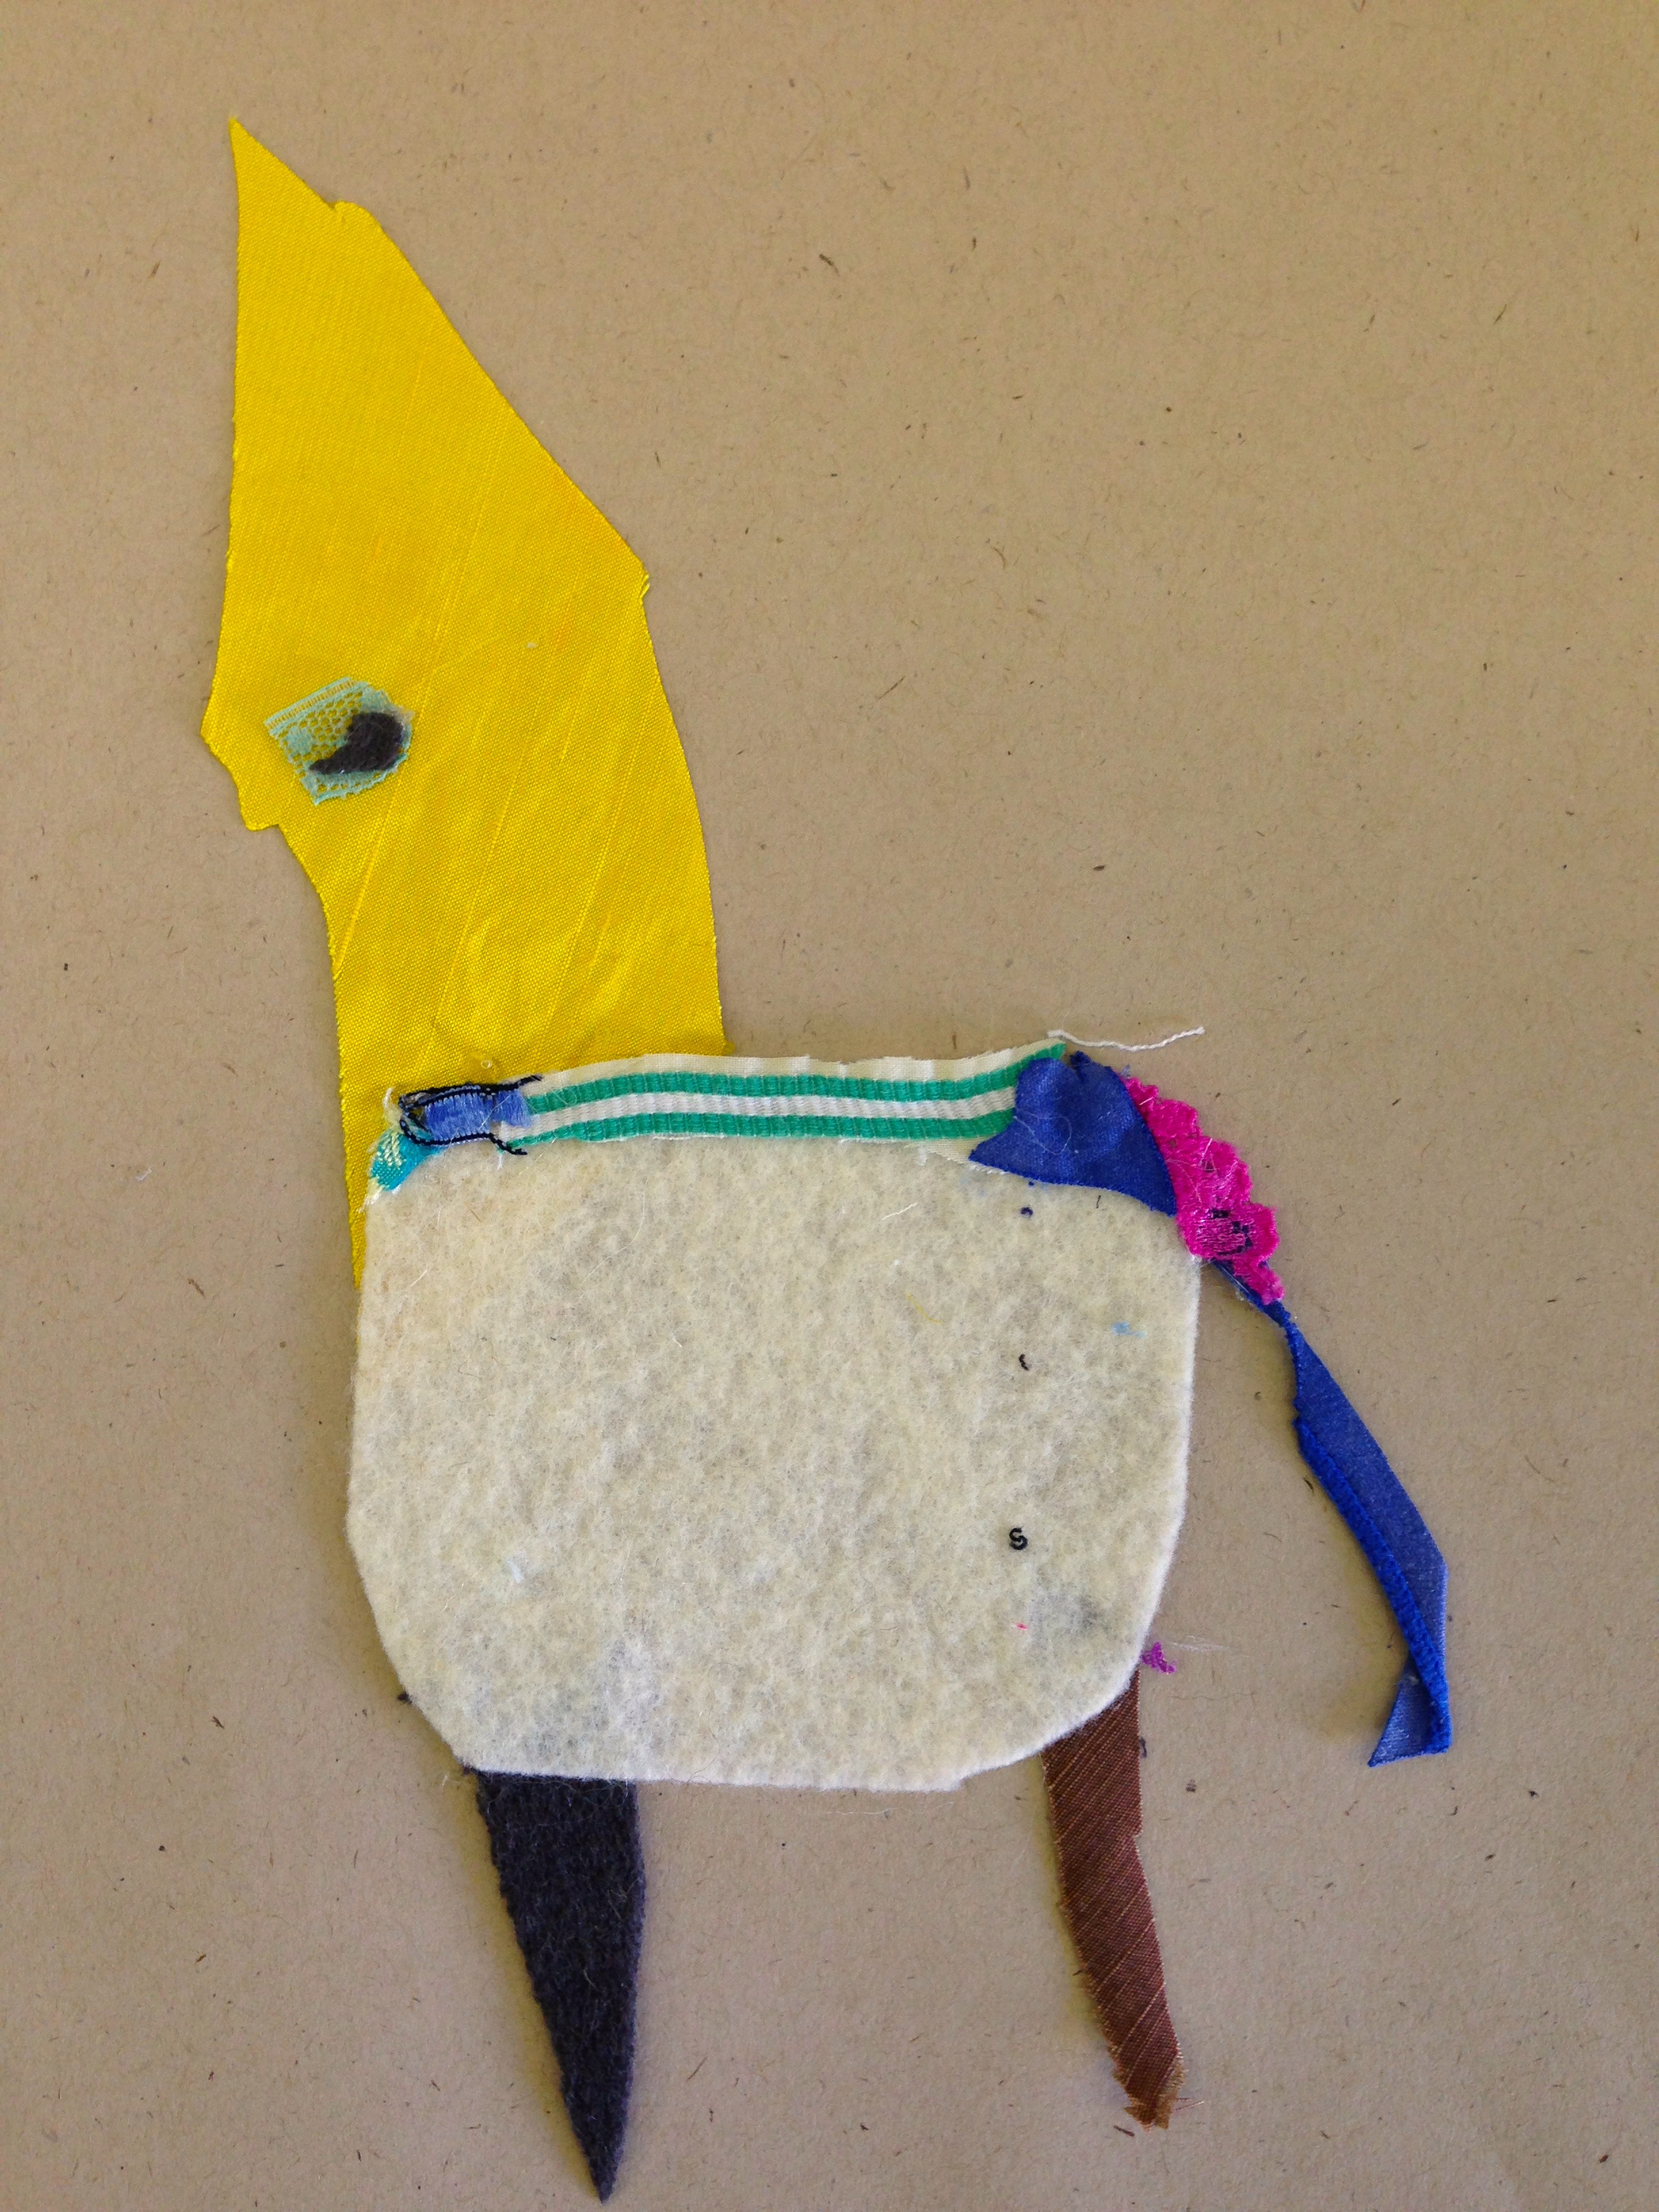 Jay headed Roo  20.5 x 20.5 inches  Recycled fabric:  2015